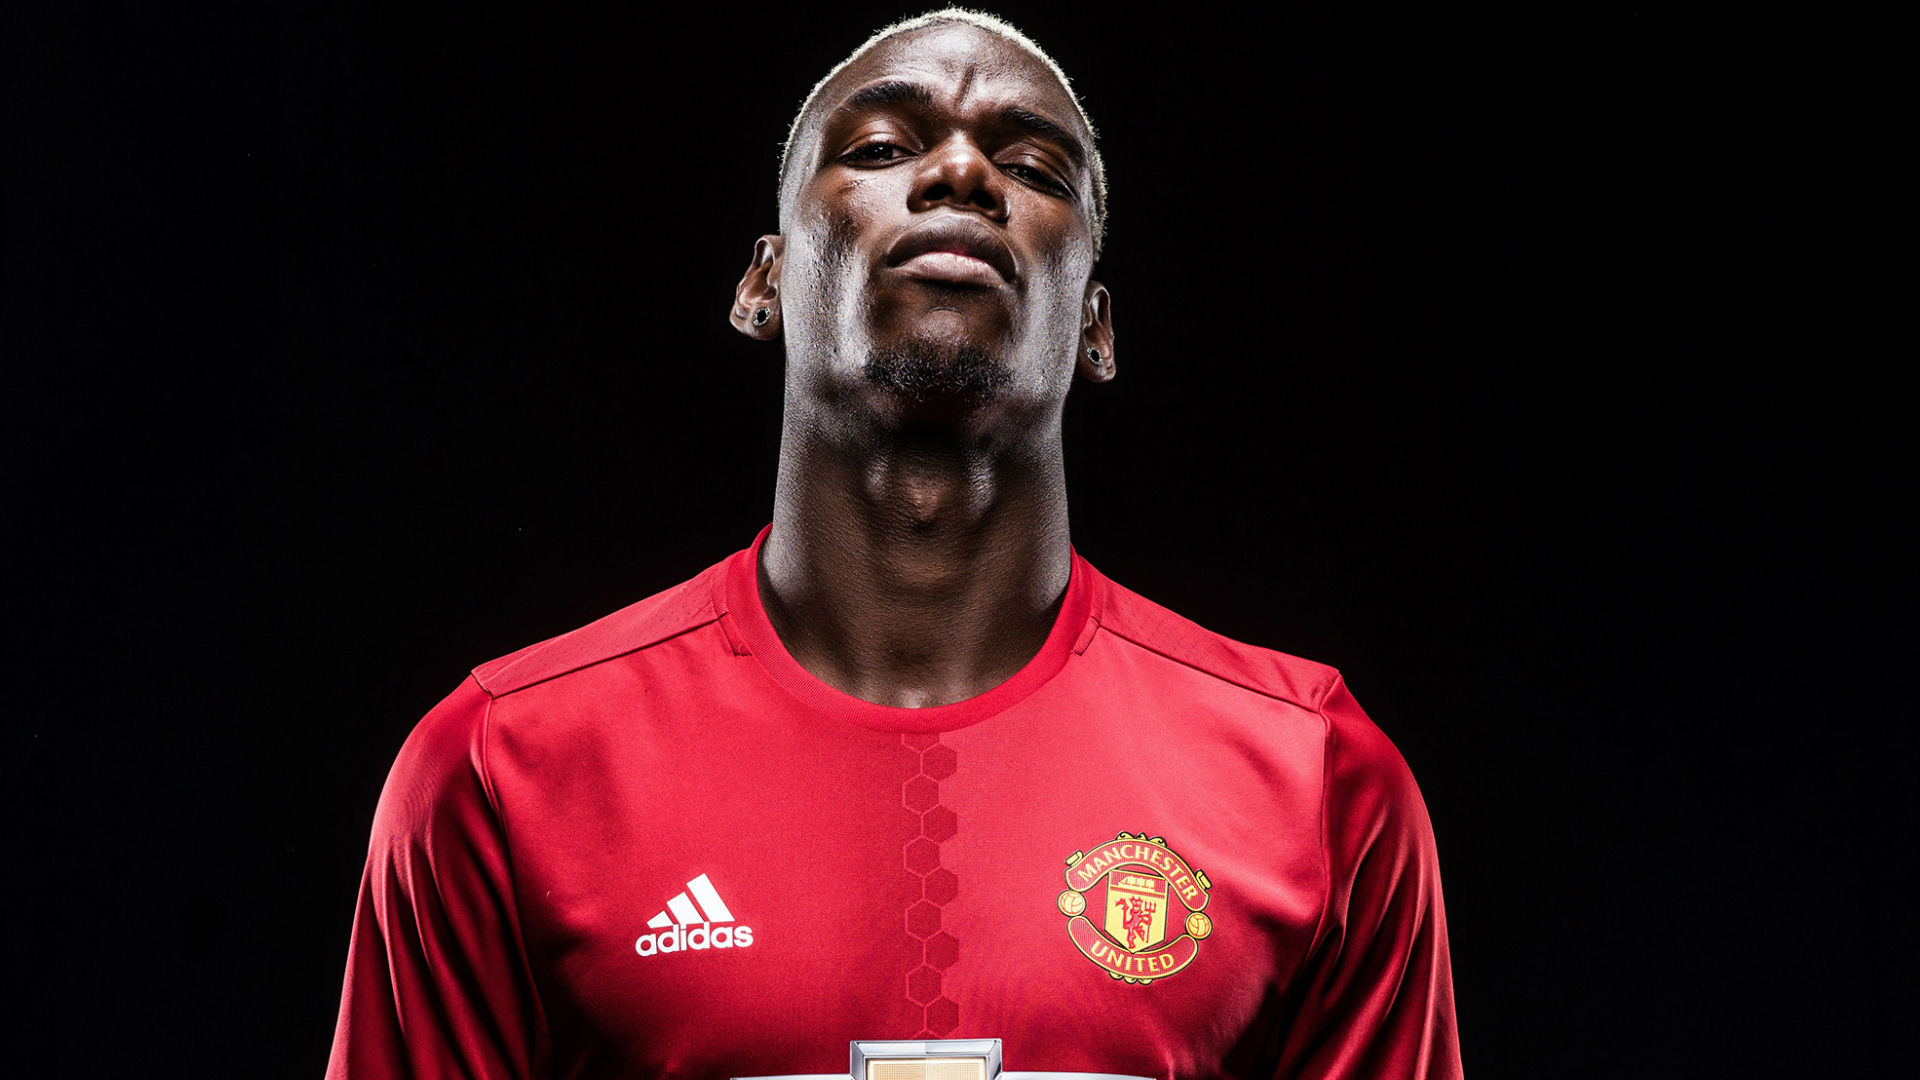 Paul Pogba football's most expensive player